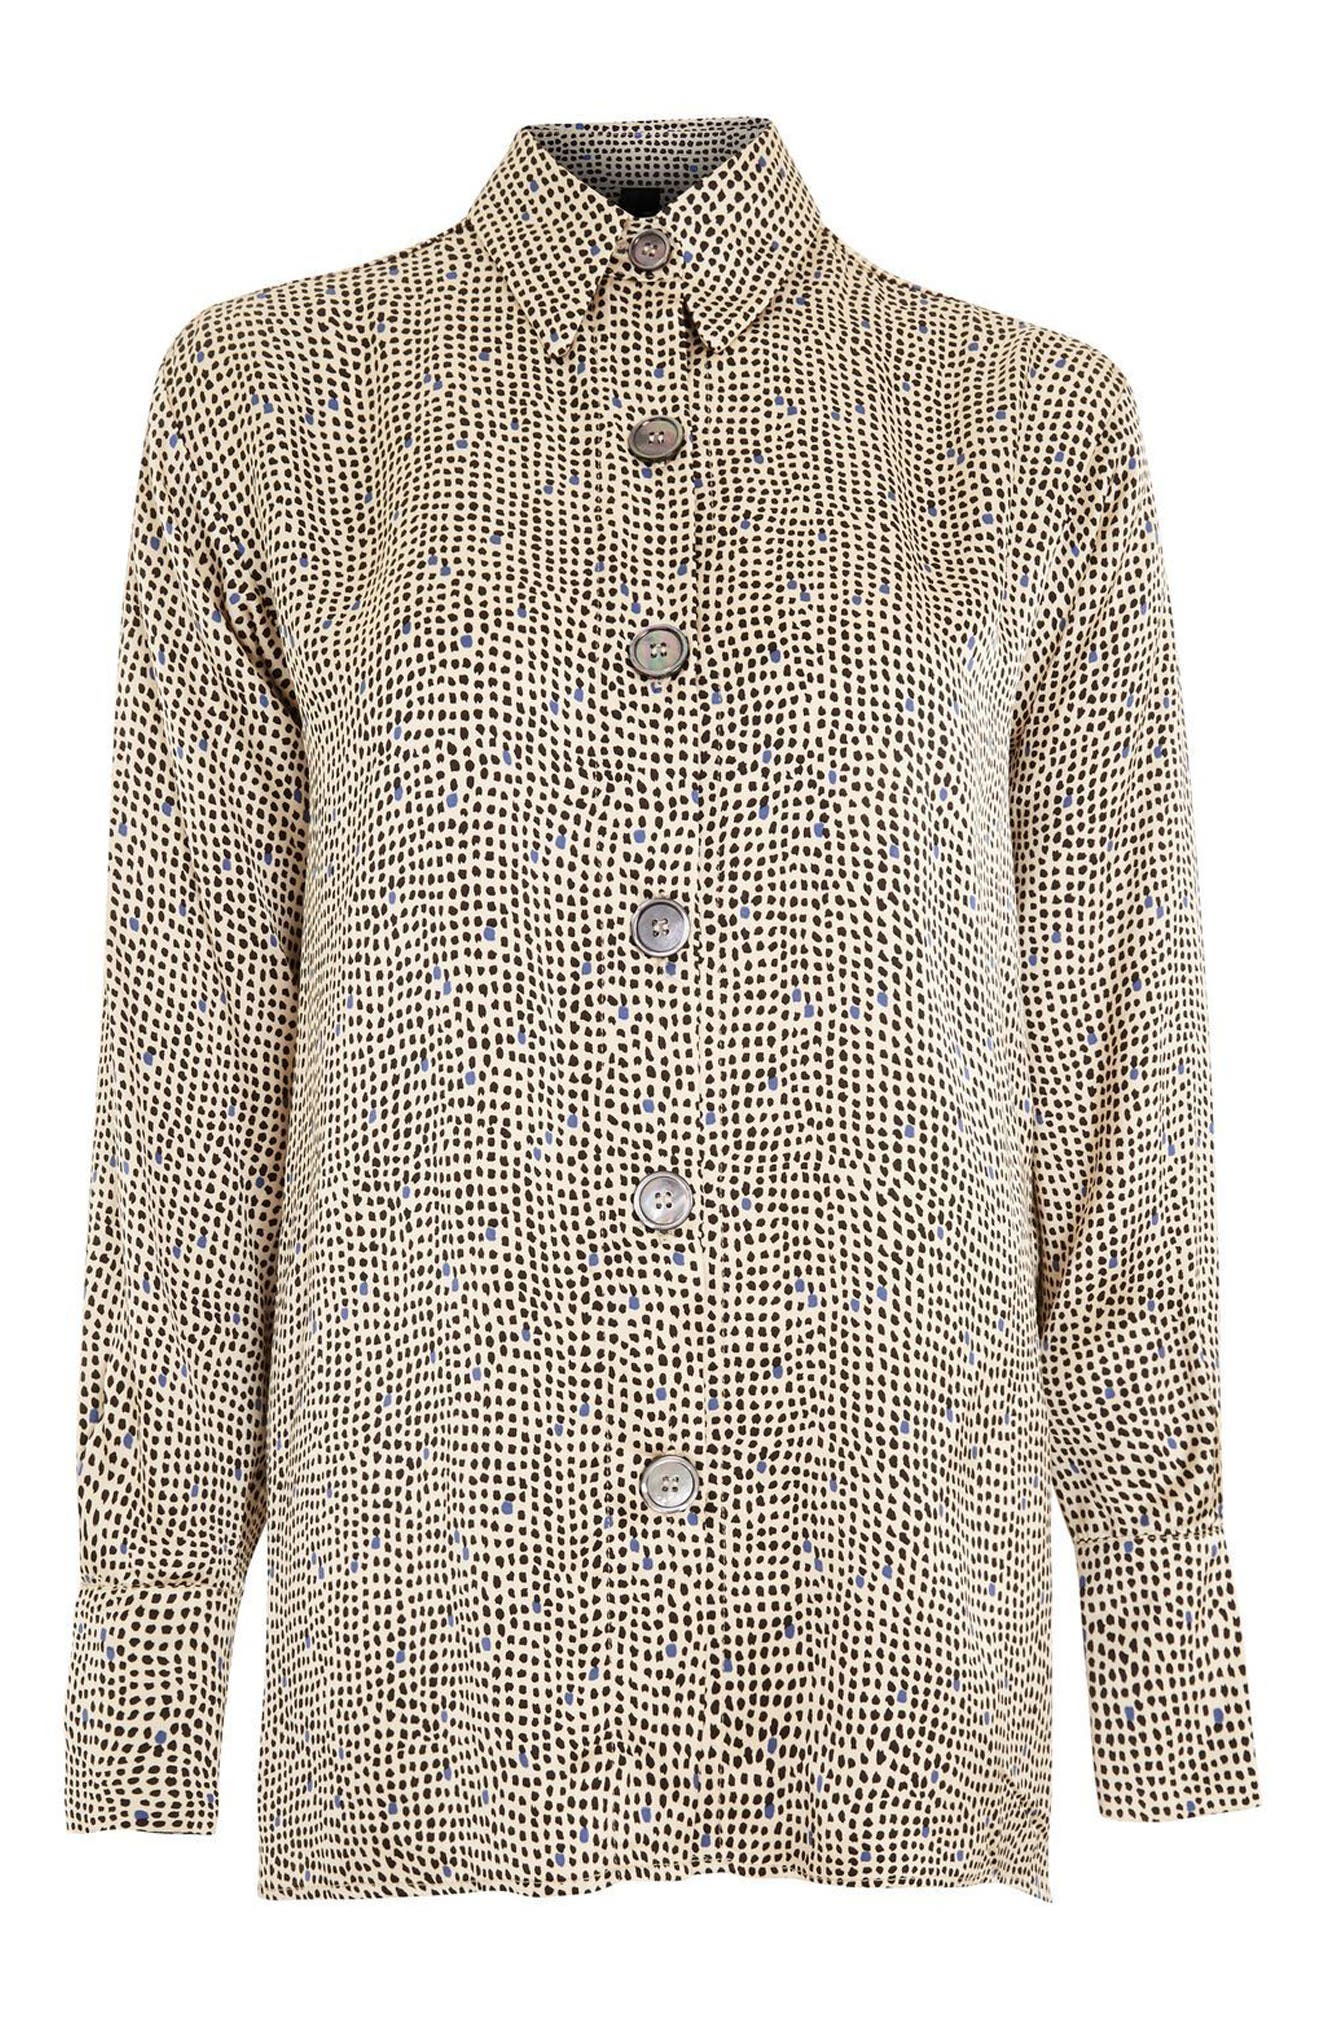 Alternate Image 1 Selected - Topshop Boutique Mini Spot Shirt